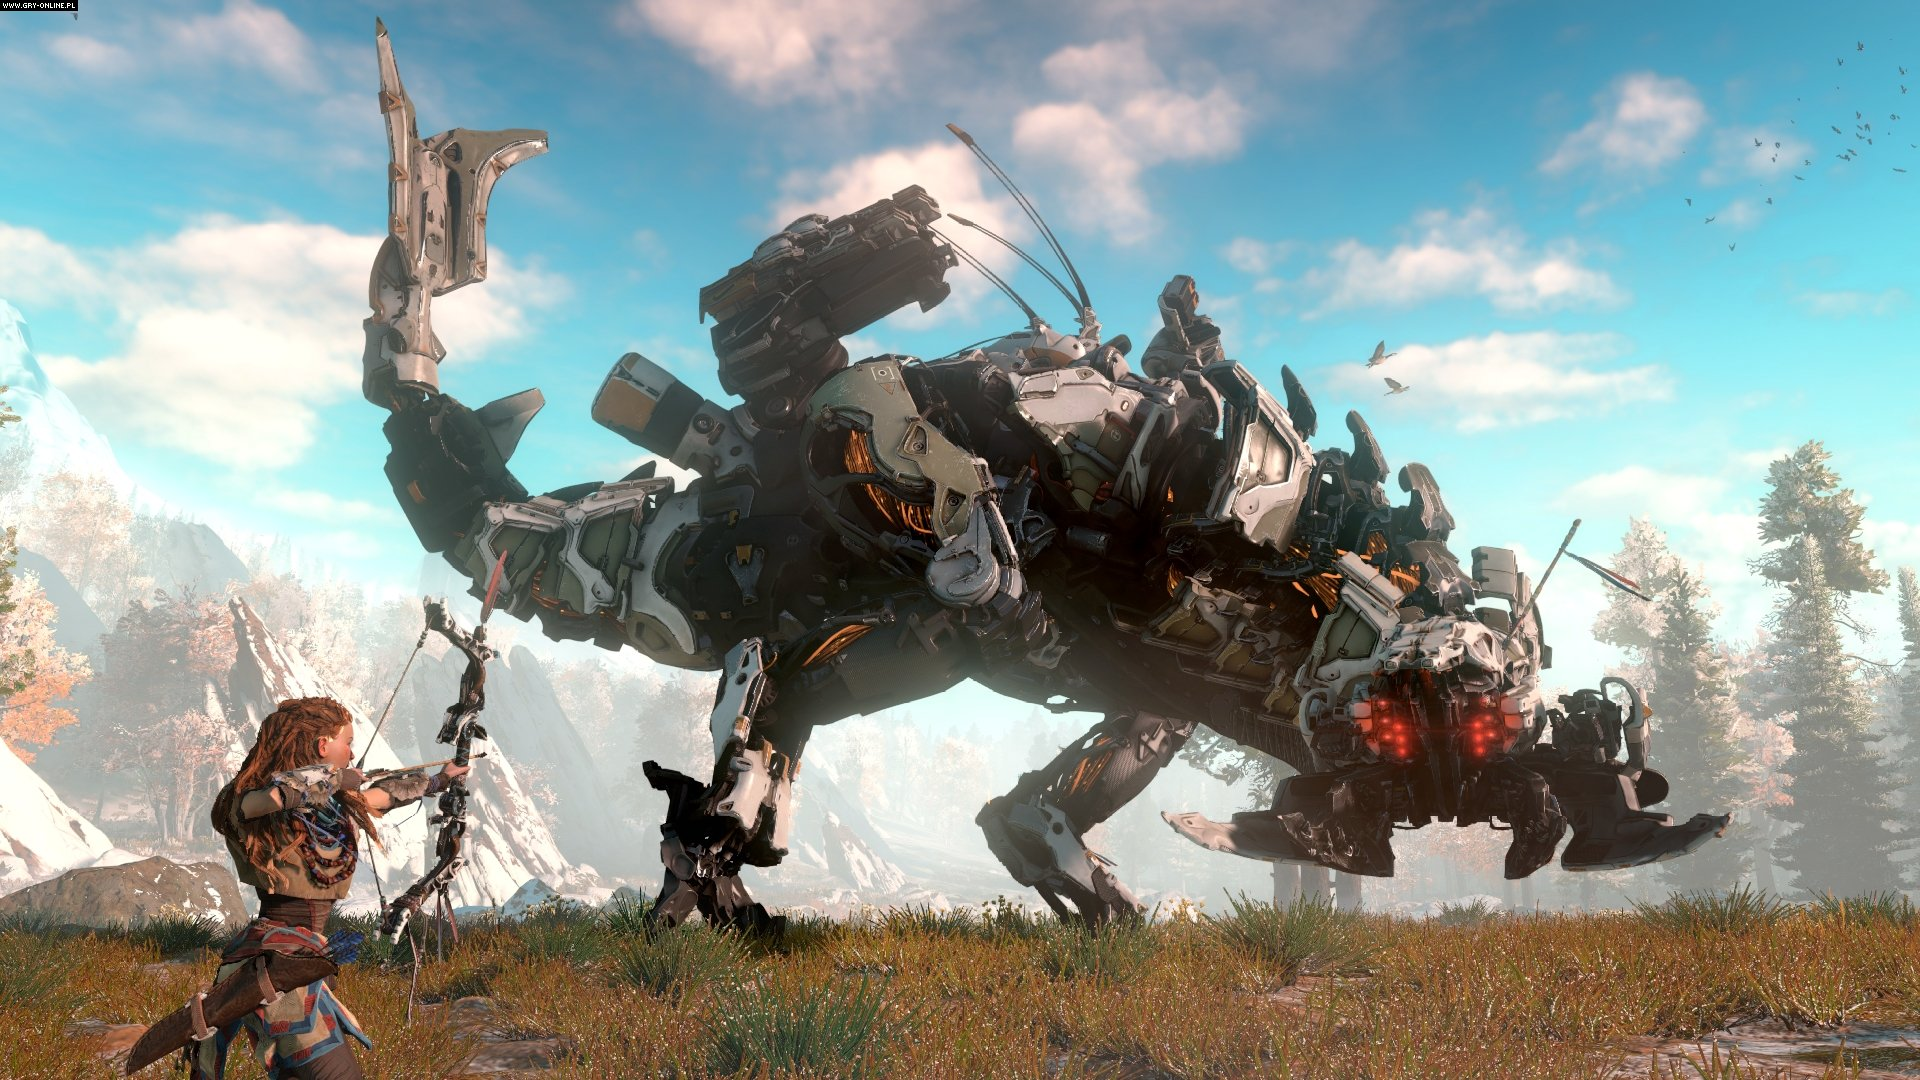 Horizon Zero Dawn PS4 Games Image 54/54, Guerrilla Games, Sony Interactive Entertainment